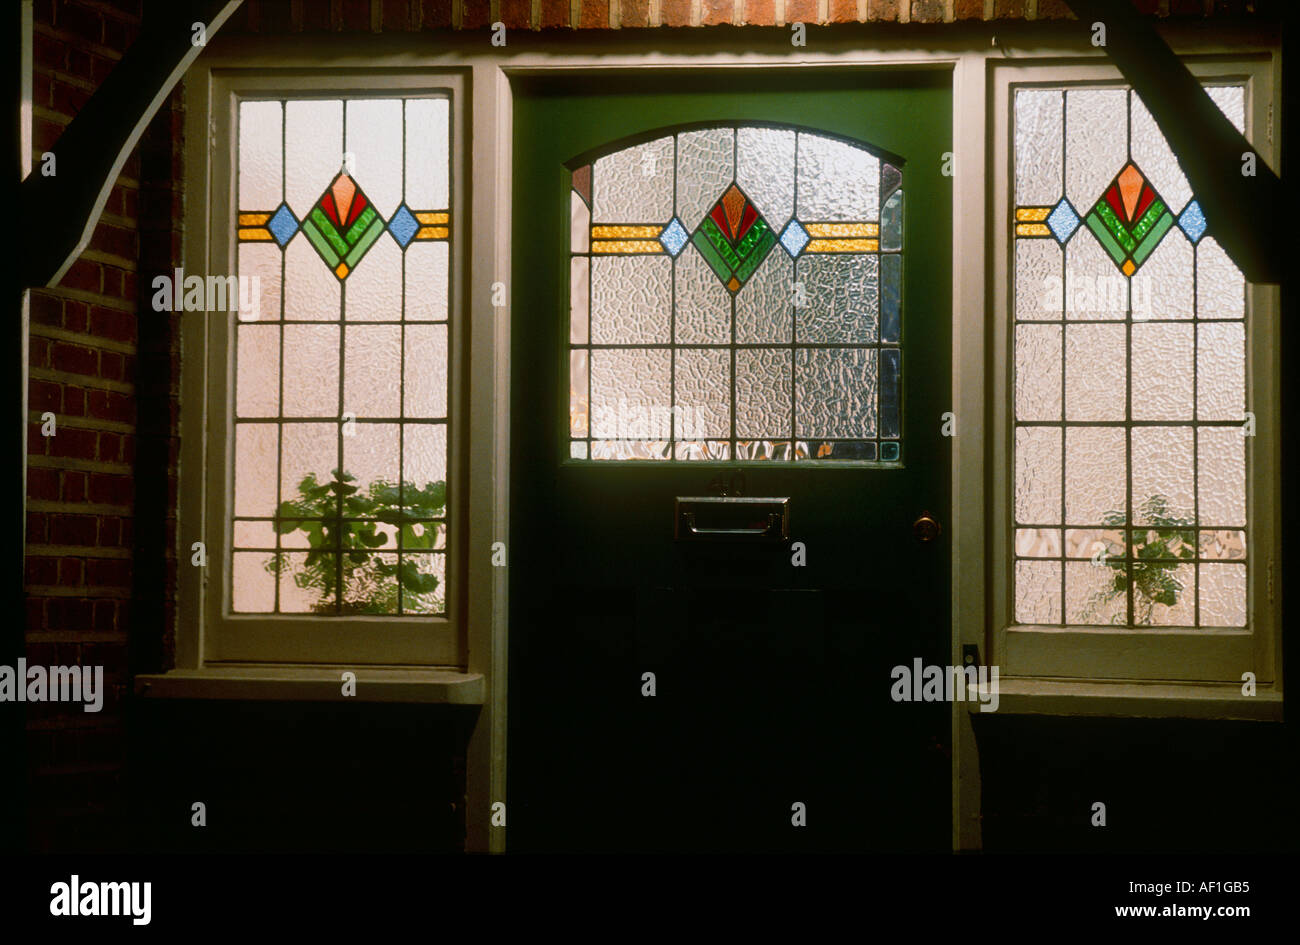 Art deco stained glass front door at night british housing for Art glass windows and doors